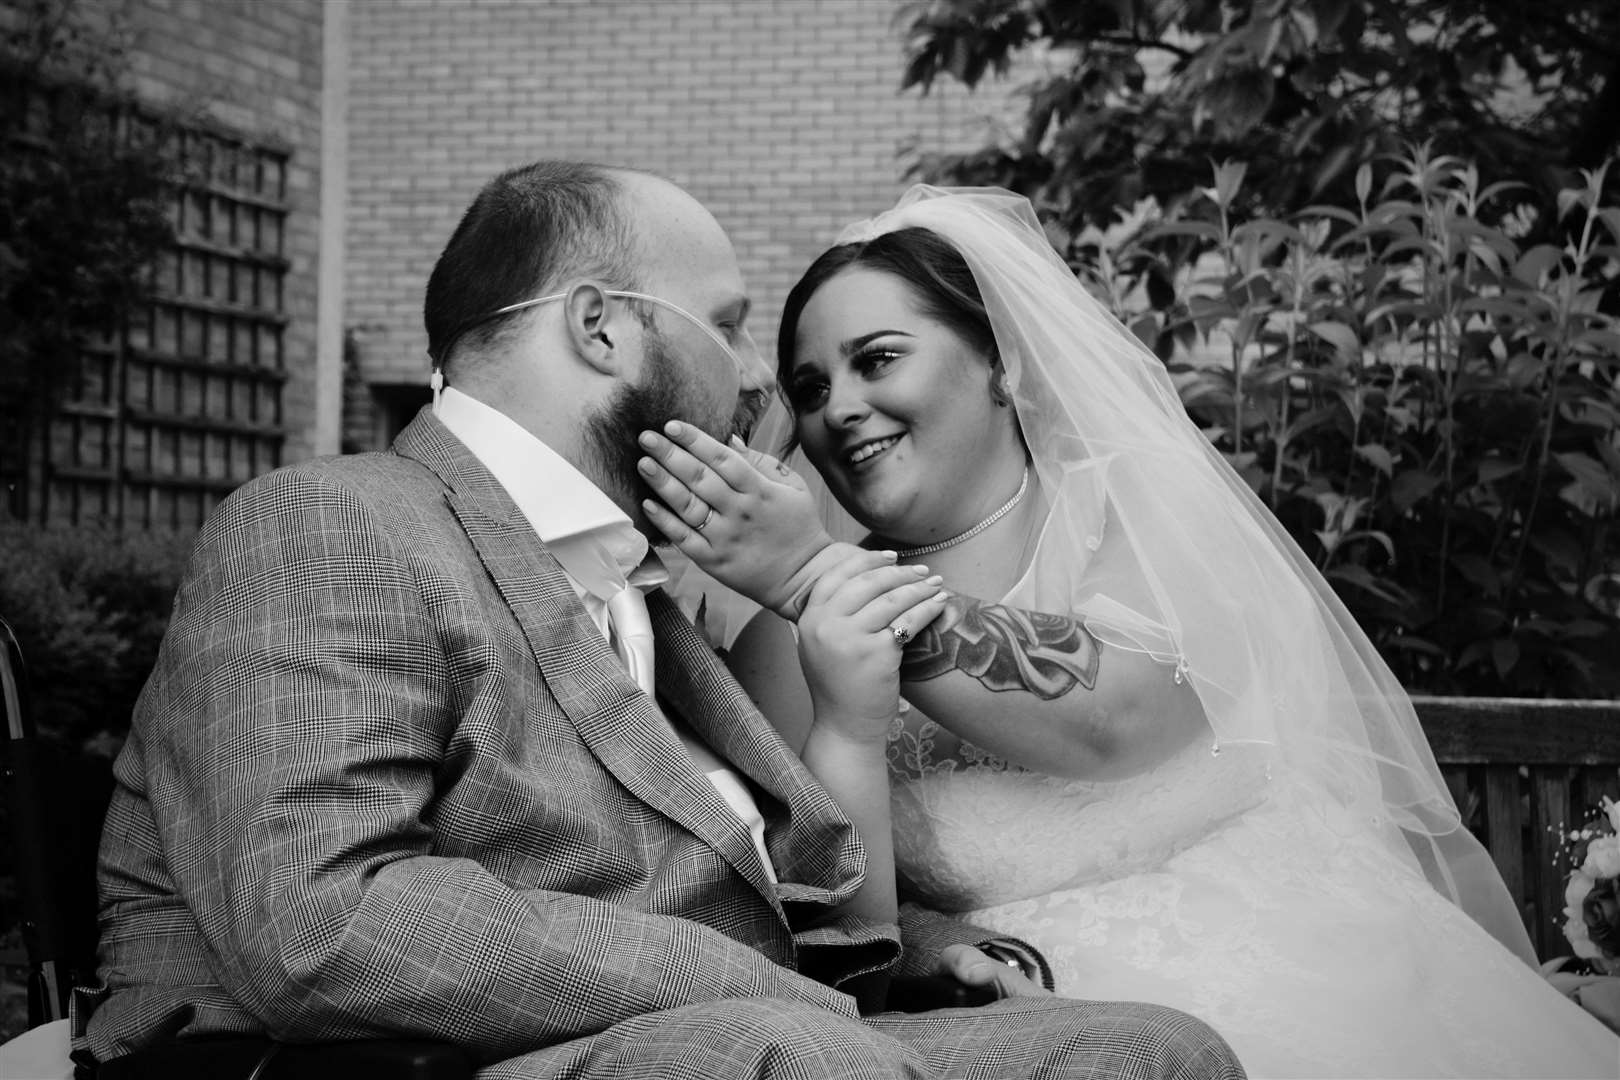 Jack and Keyleigh Tate who married at Addenbrooke's Hospital on Friday